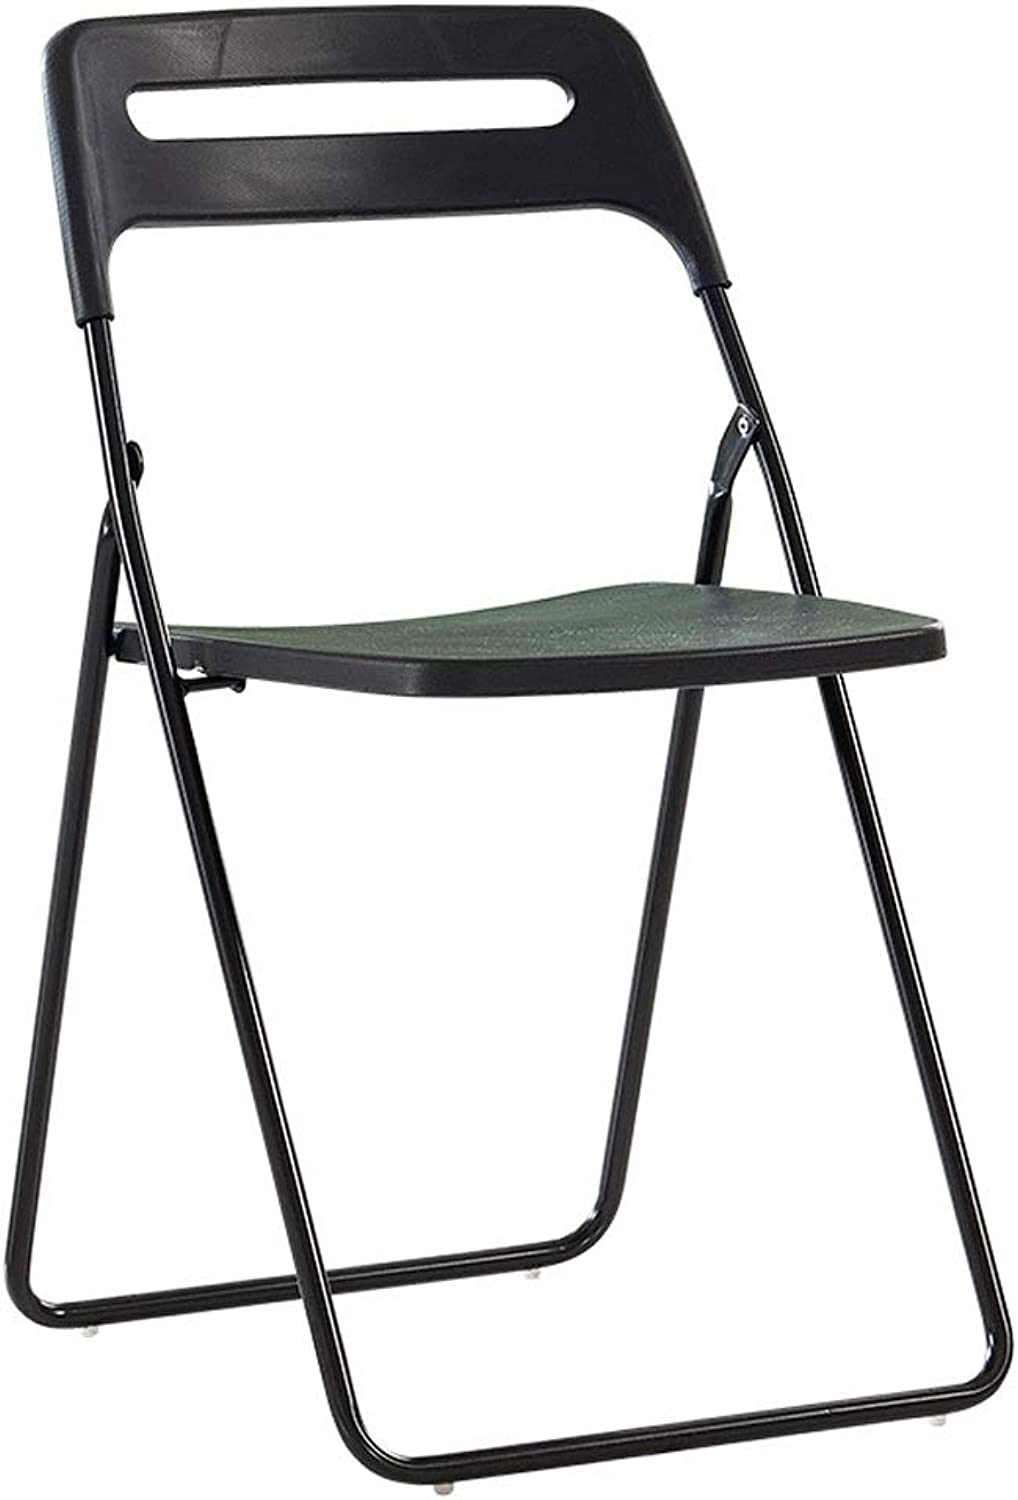 Plastic Folding Chair Simple Student Dormitory Chair Home Dining Chair Office Training Chair Computer